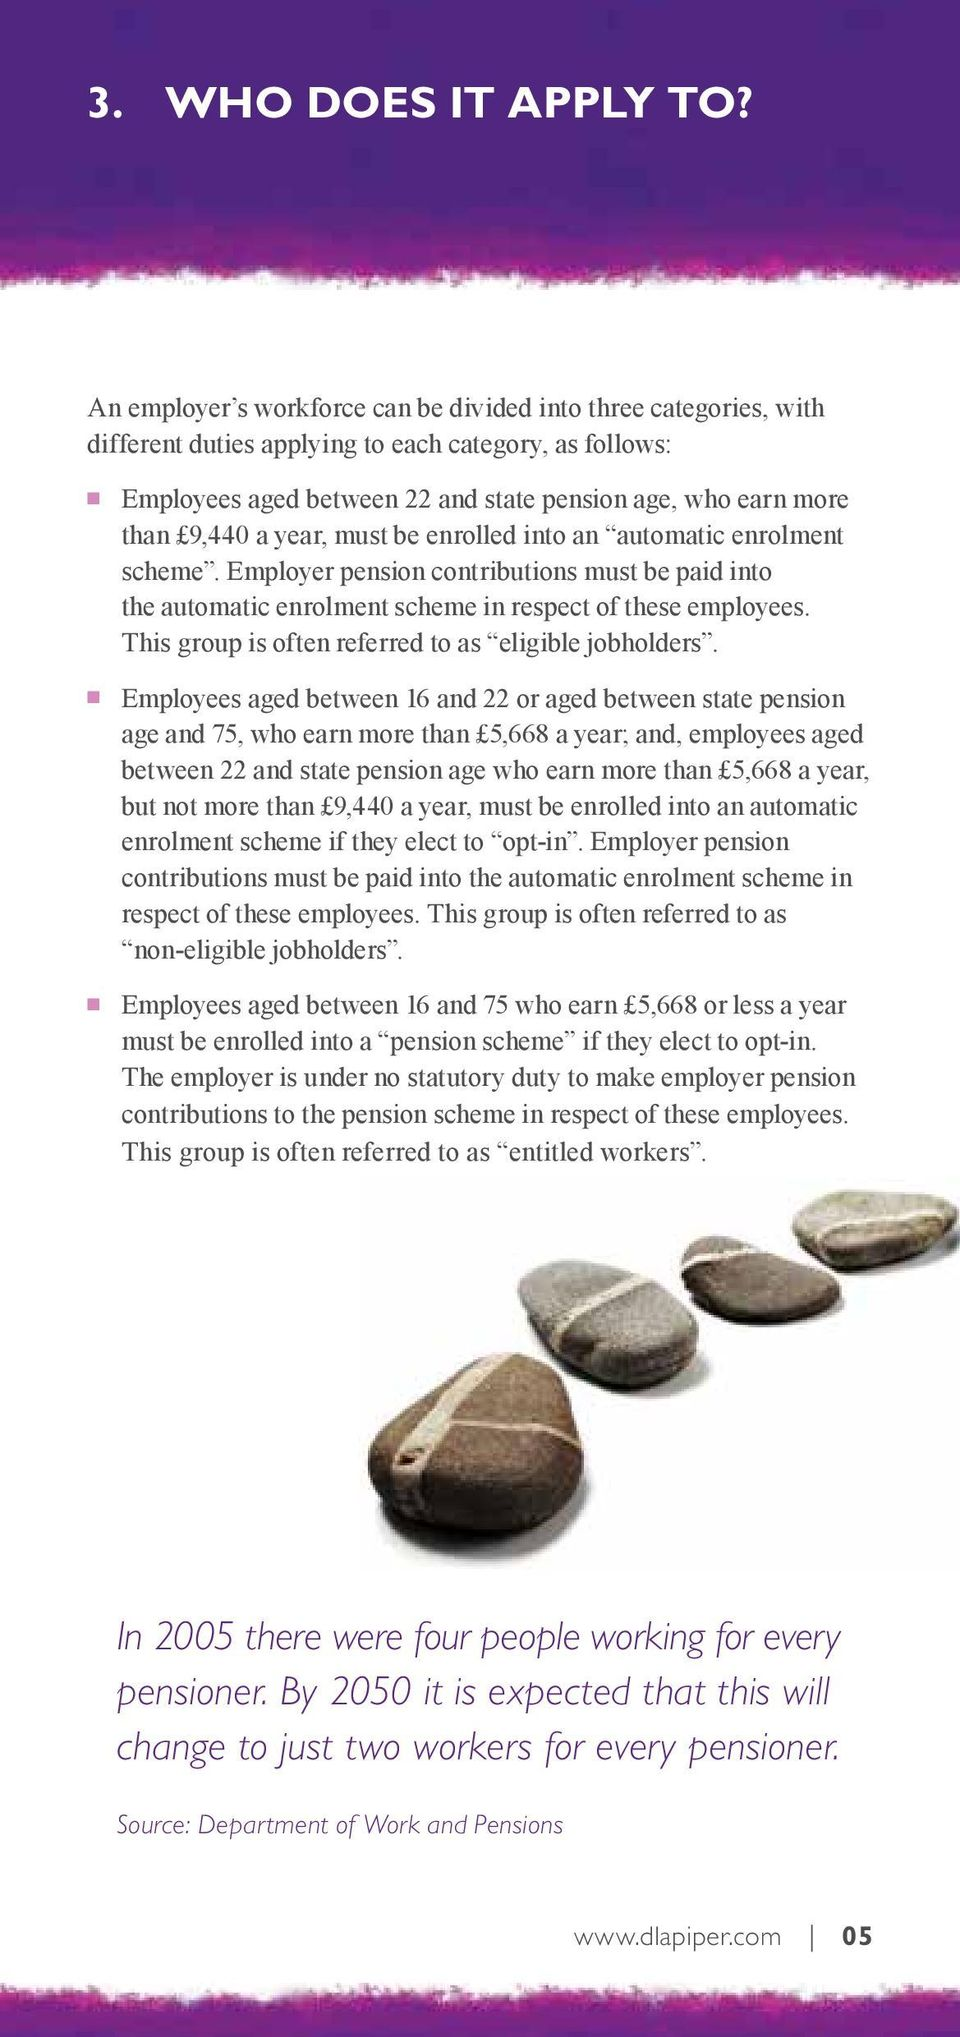 year, must be enrolled into an automatic enrolment scheme. Employer pension contributions must be paid into the automatic enrolment scheme in respect of these employees.